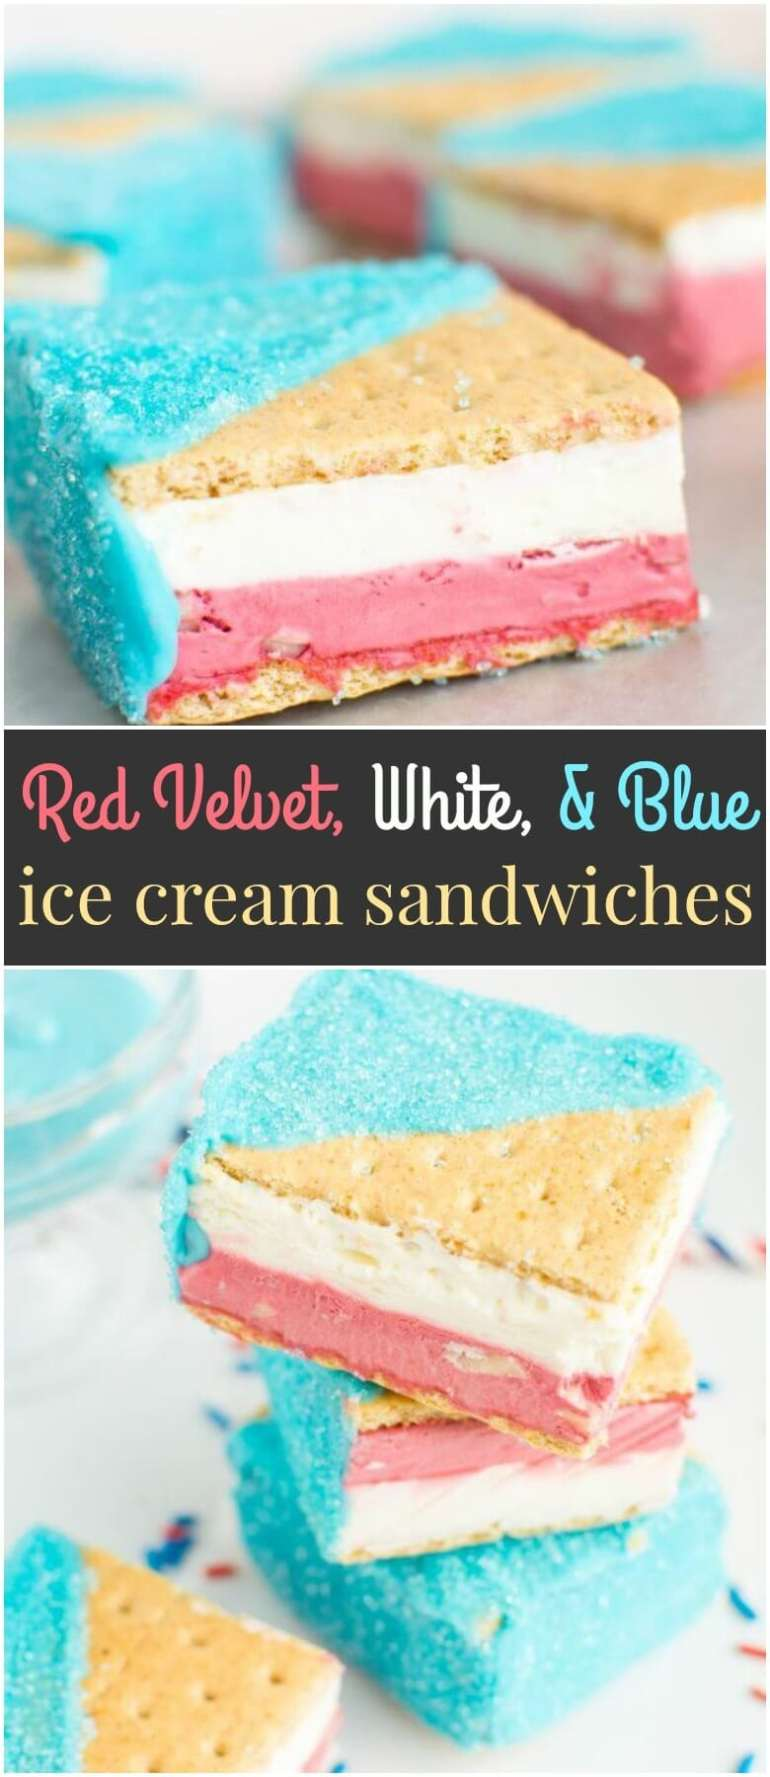 With a layer of no-churn red velvet white chocolate chip ice cream, a layer of cheesecake ice cream, and a fabulously festive blue white chocolate shell, these Red Velvet, White, and Blue Ice Cream Sandwiches are all you need to cool down this Fourth of July!